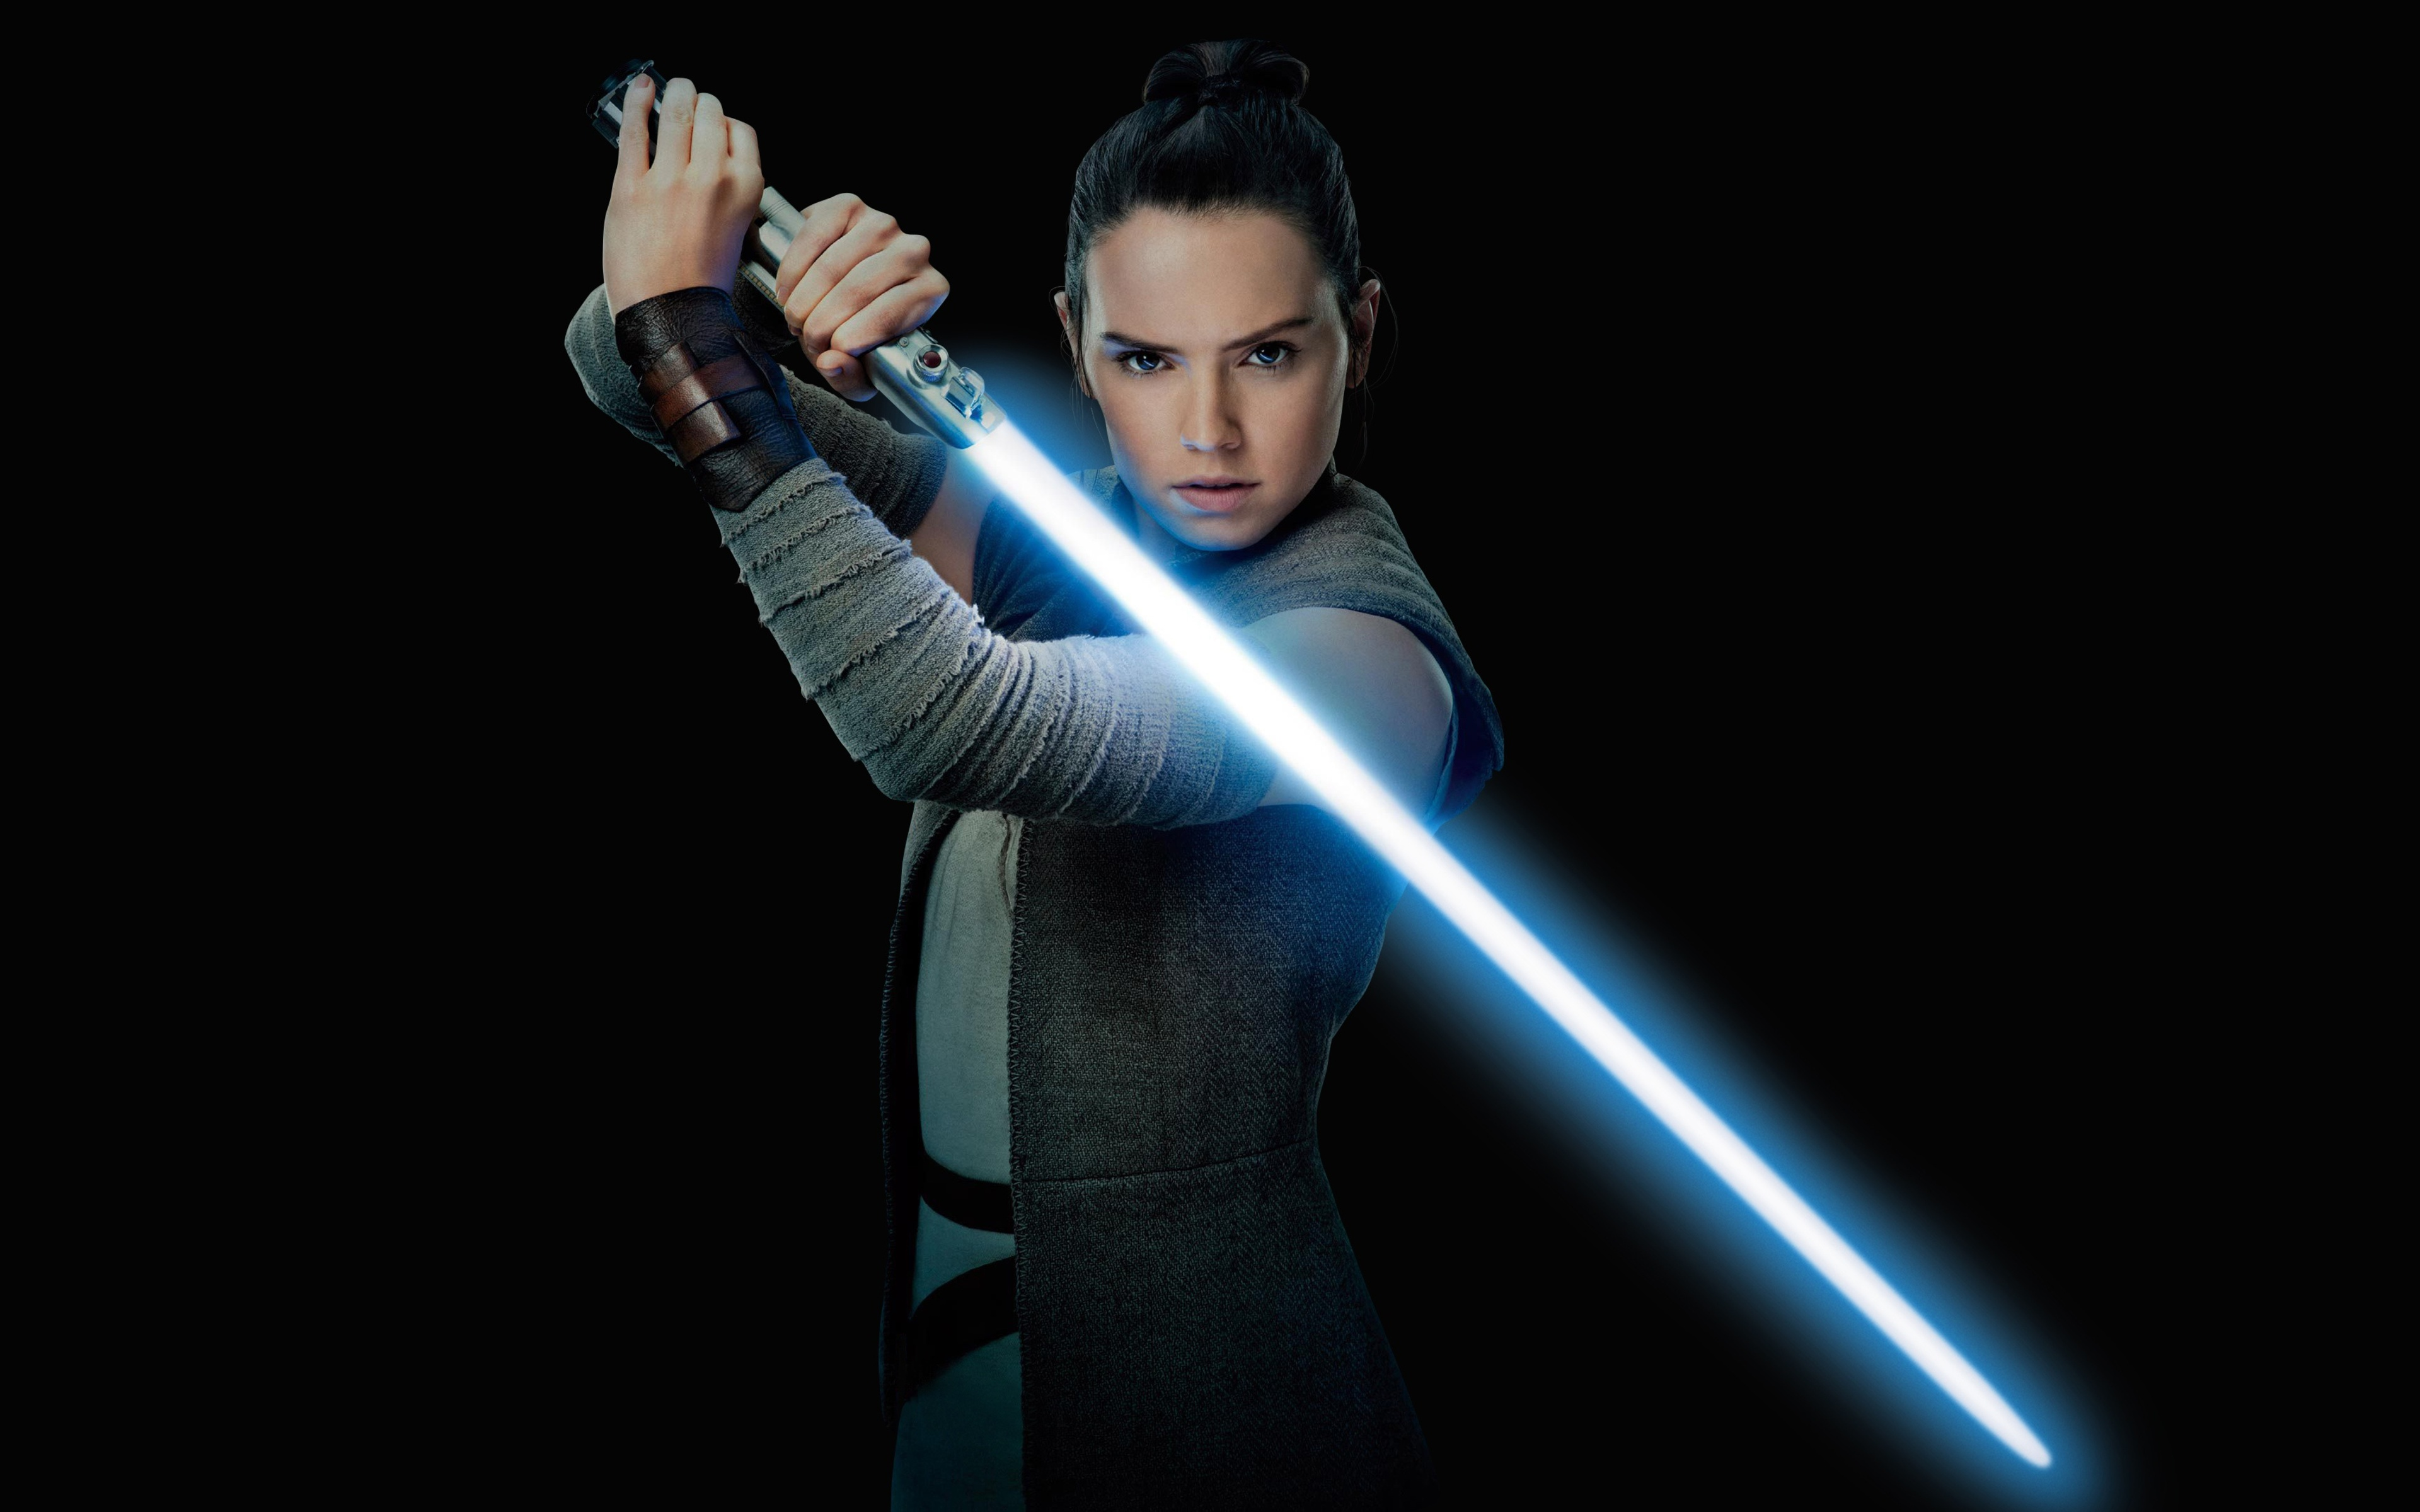 daisy-ridley-as-rey-star-wars-in-the-last-jedi-4k-nx.jpg